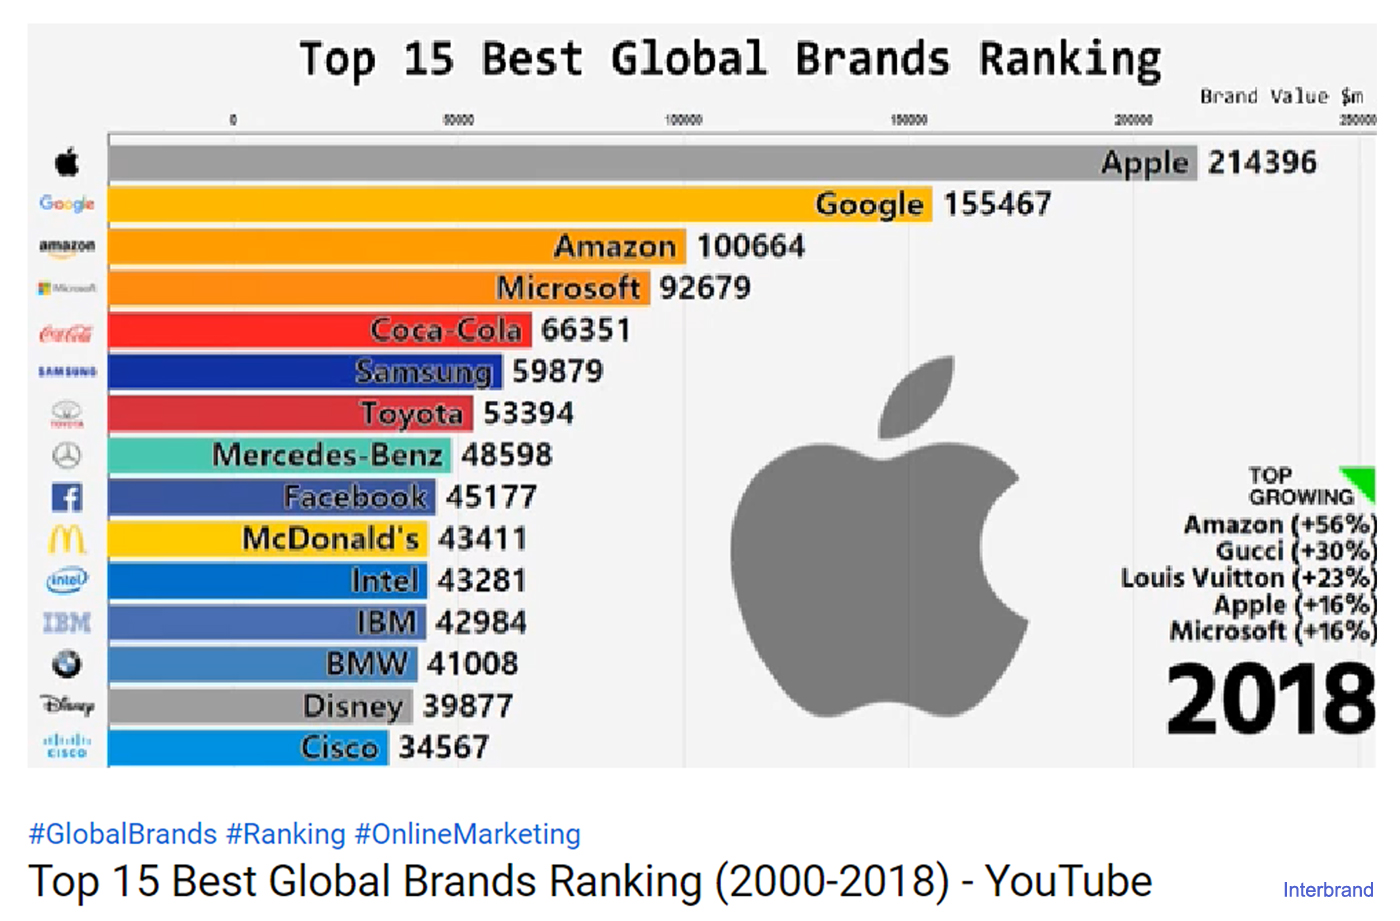 Top 15 Best Global Brands Ranking (2000-2018) - YouTube